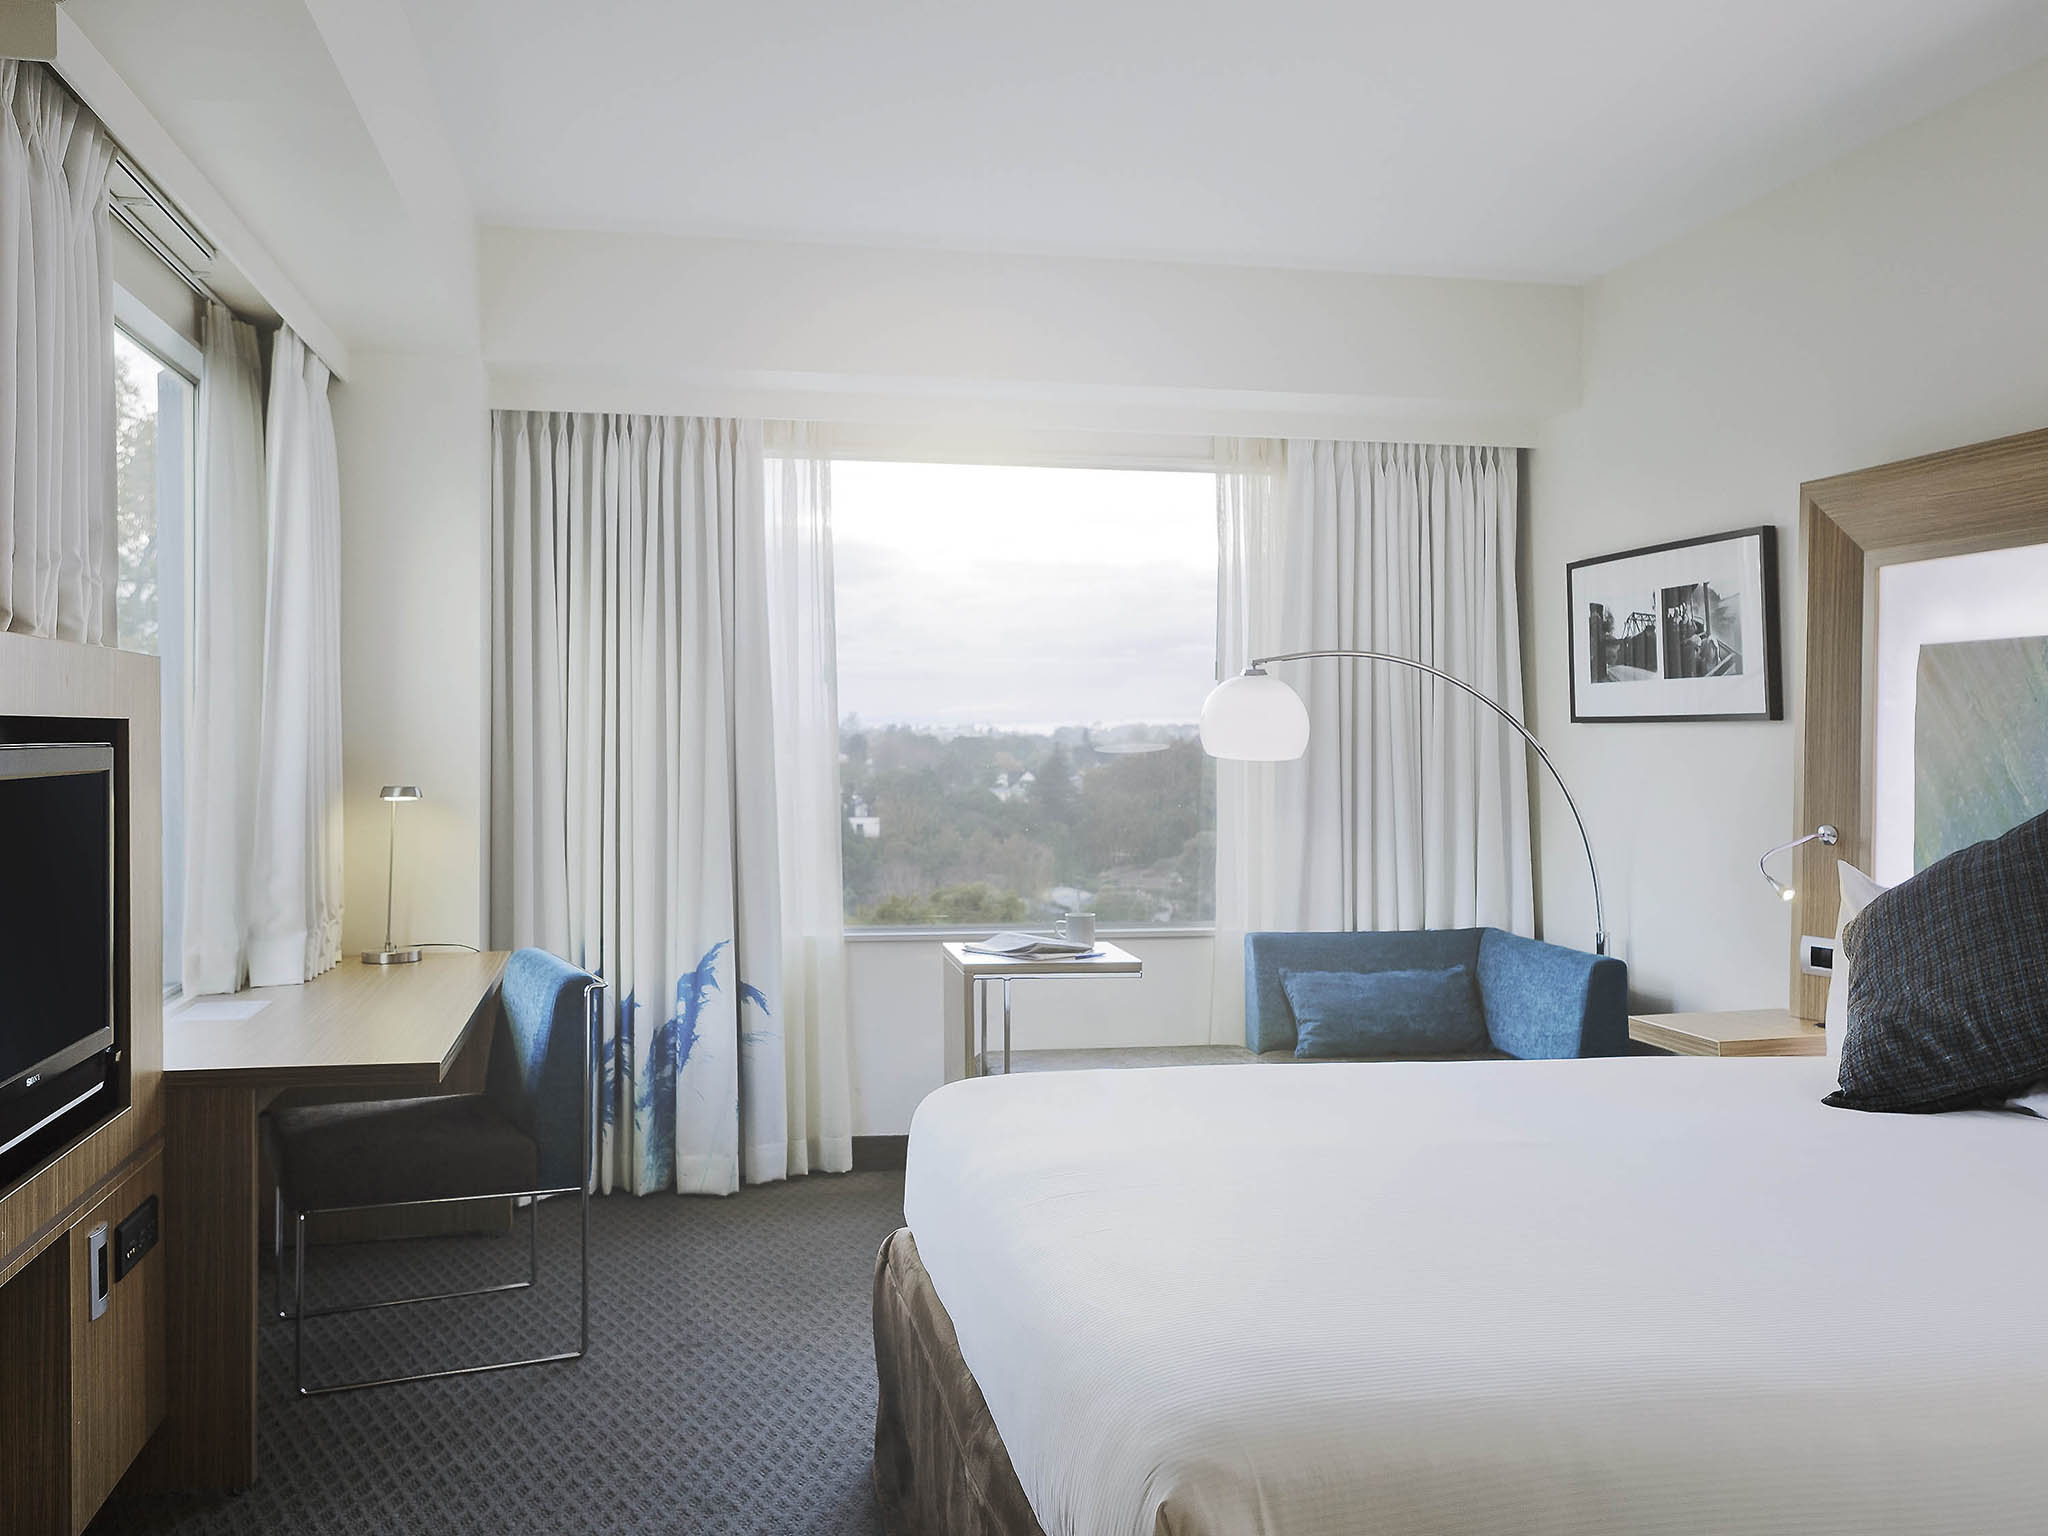 Hotel Novotel Hamilton Tainui - Superior King or Superior Twin (2x double beds)$195 room only $220 inc 1 x breakfast$245 inc 2 x breakfastMake yourself at home in 4-star comfort at Novotel Hamilton Tainui hotel in the city centre. Start your day fresh with breakfast from the buffet in the light-filled restaurant or on the terrace adjacent to the Waikato River. Contemporary decor and natural light will make your room a haven whether you're working or holidaying at Novotel.